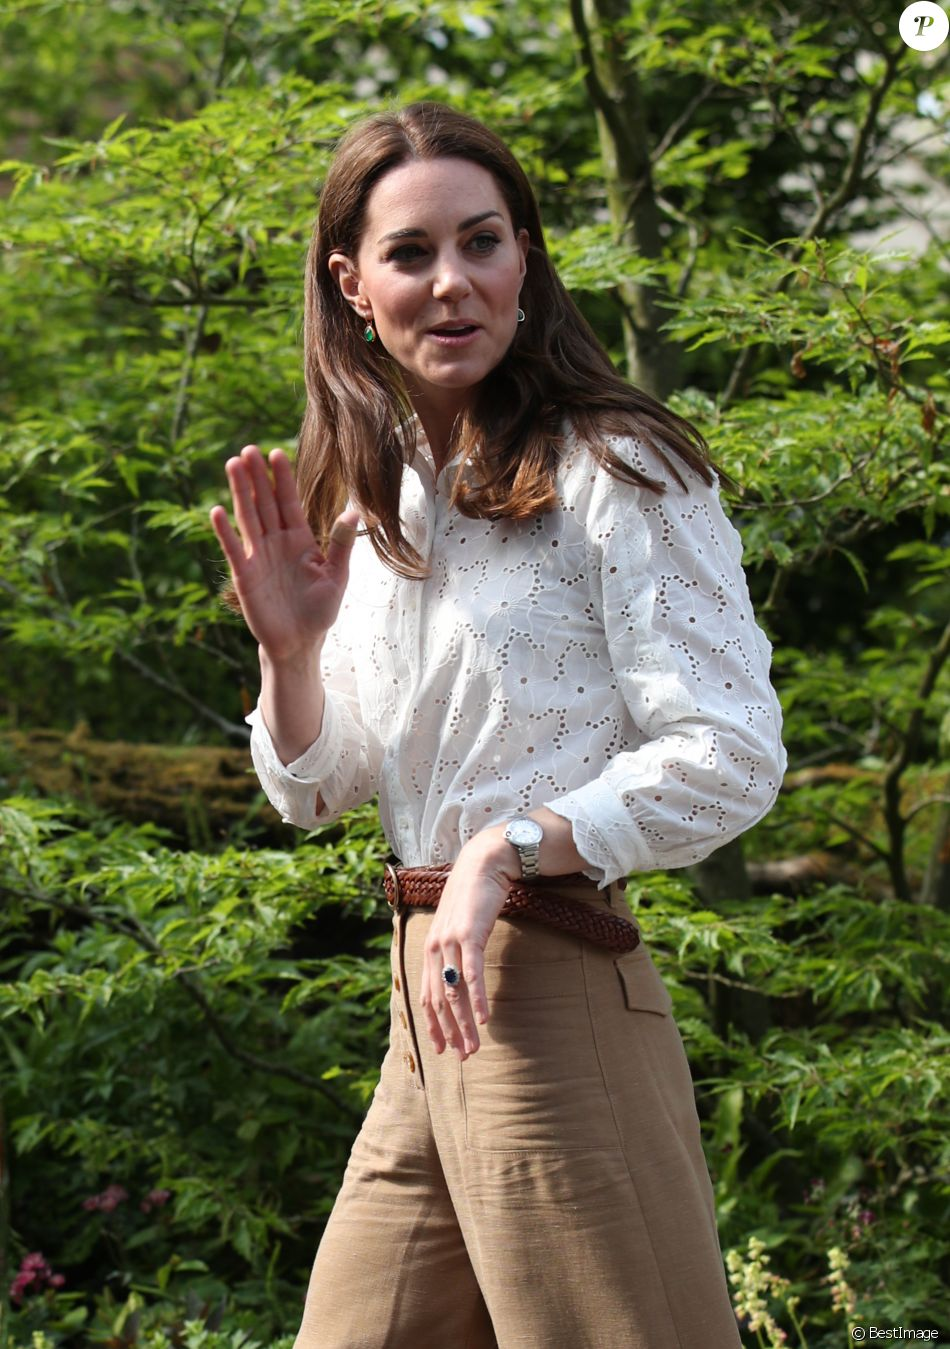 Catherine (Kate) Middleton, duchesse de Cambridge visite le RHS Chelsea Flower Show à Londres. Le 19 mai 2019.